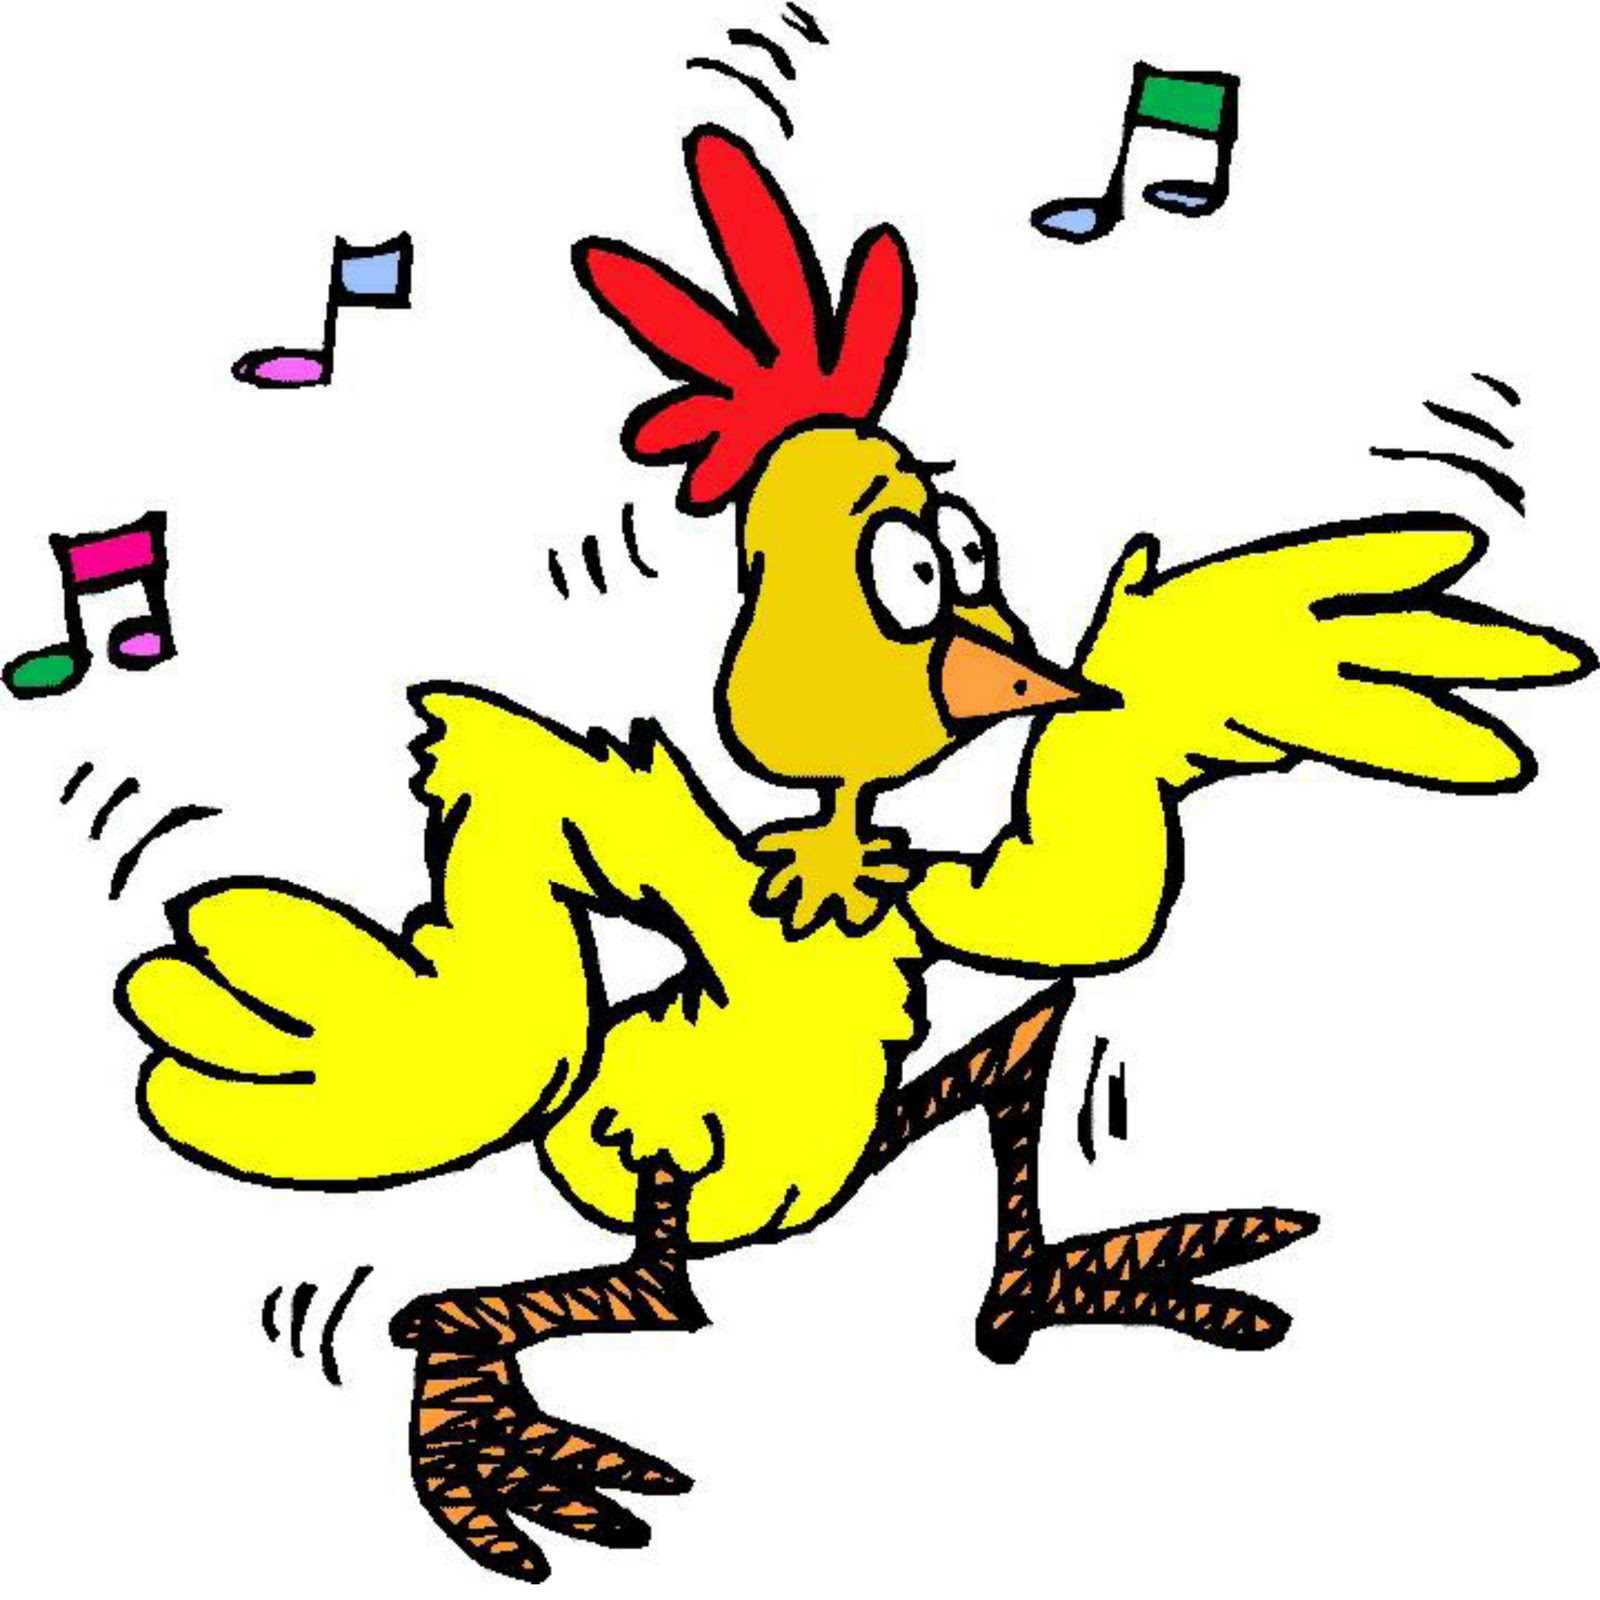 Funky Chicken Dancing Animated Gif Best clipart free image.